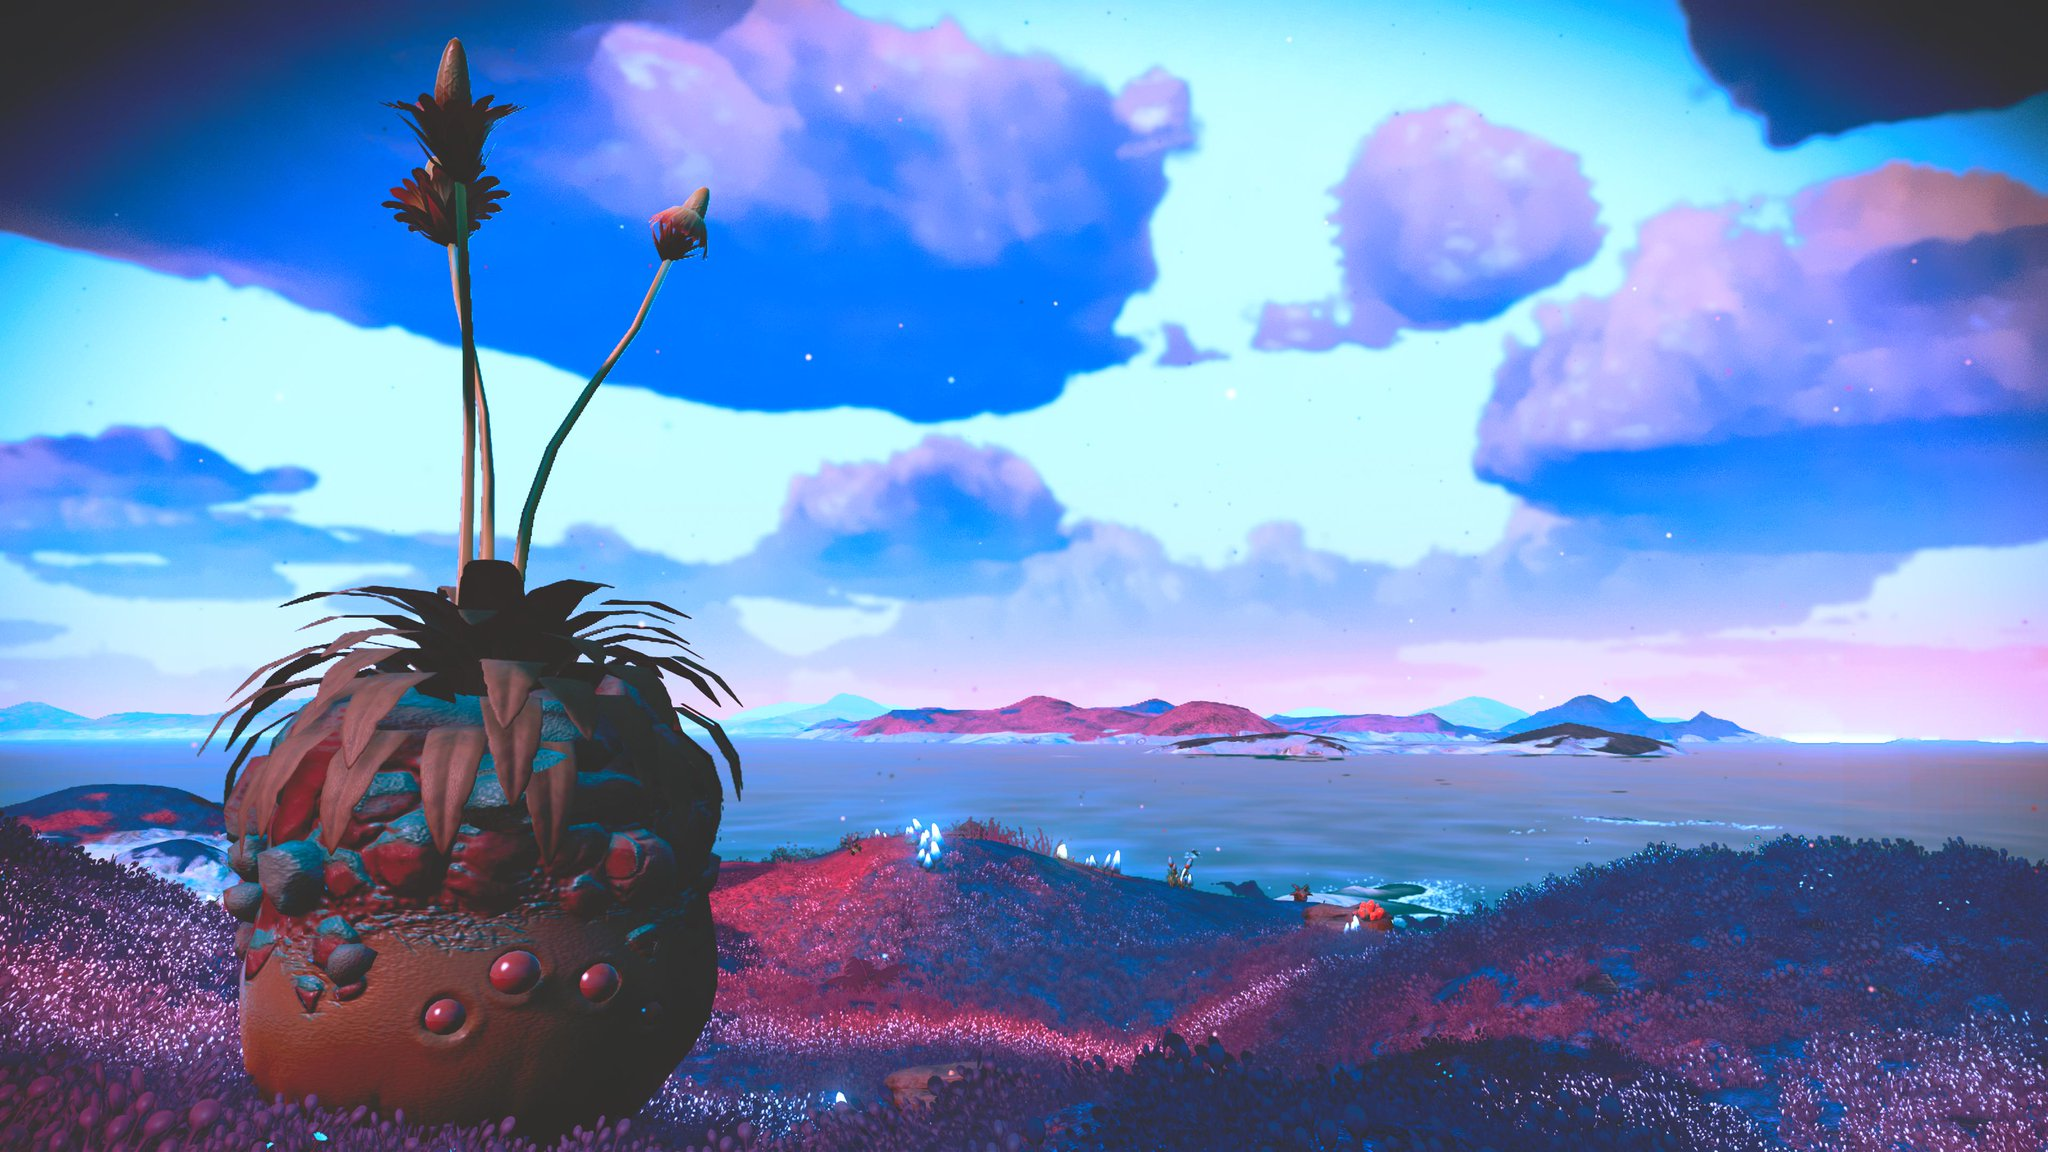 A pineapple creature looks out to a vaporwave sea.